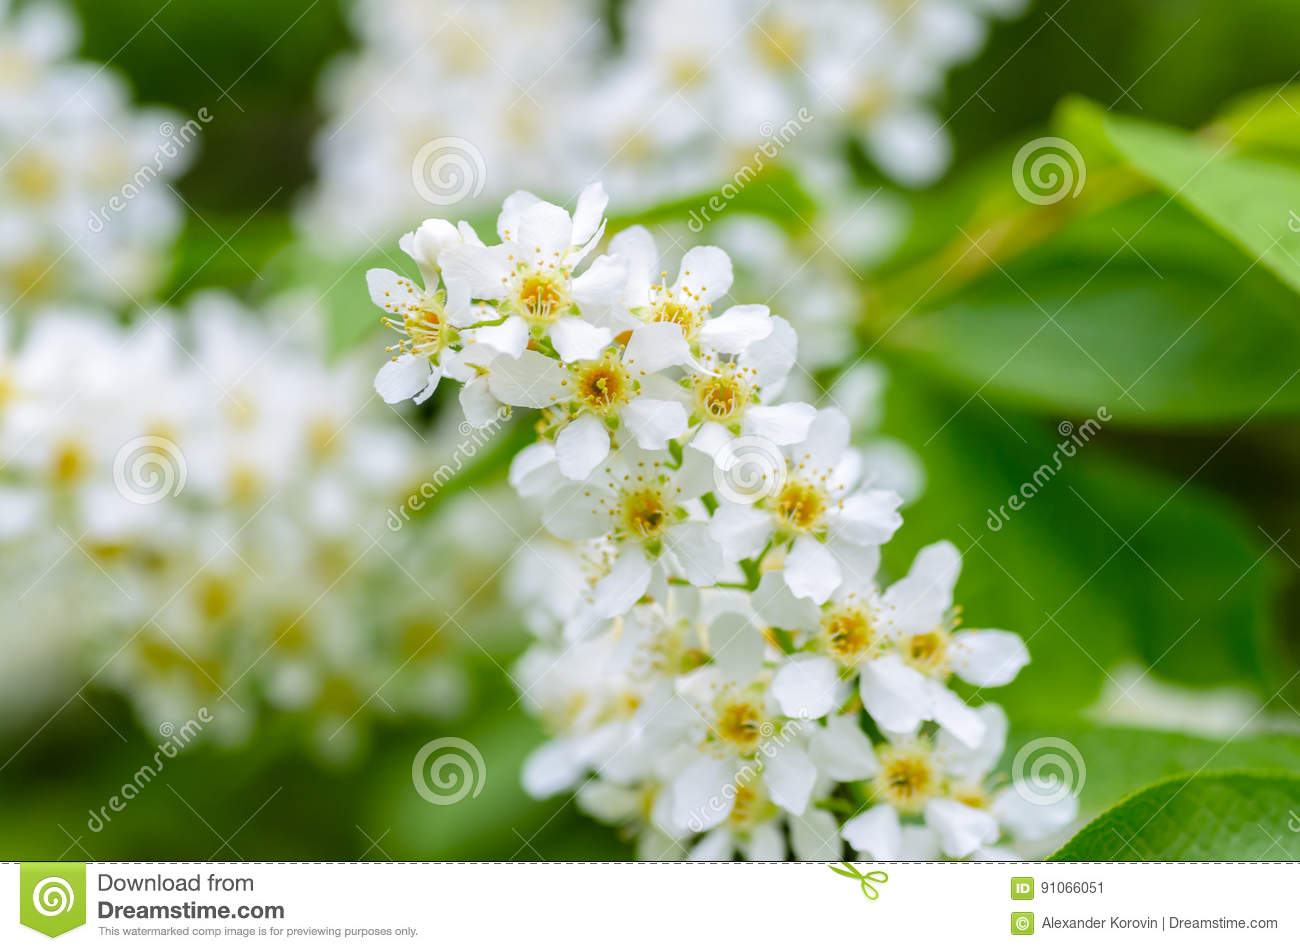 White Fragrant Flowers Of The Bird Cherry Tree Stock Image Image